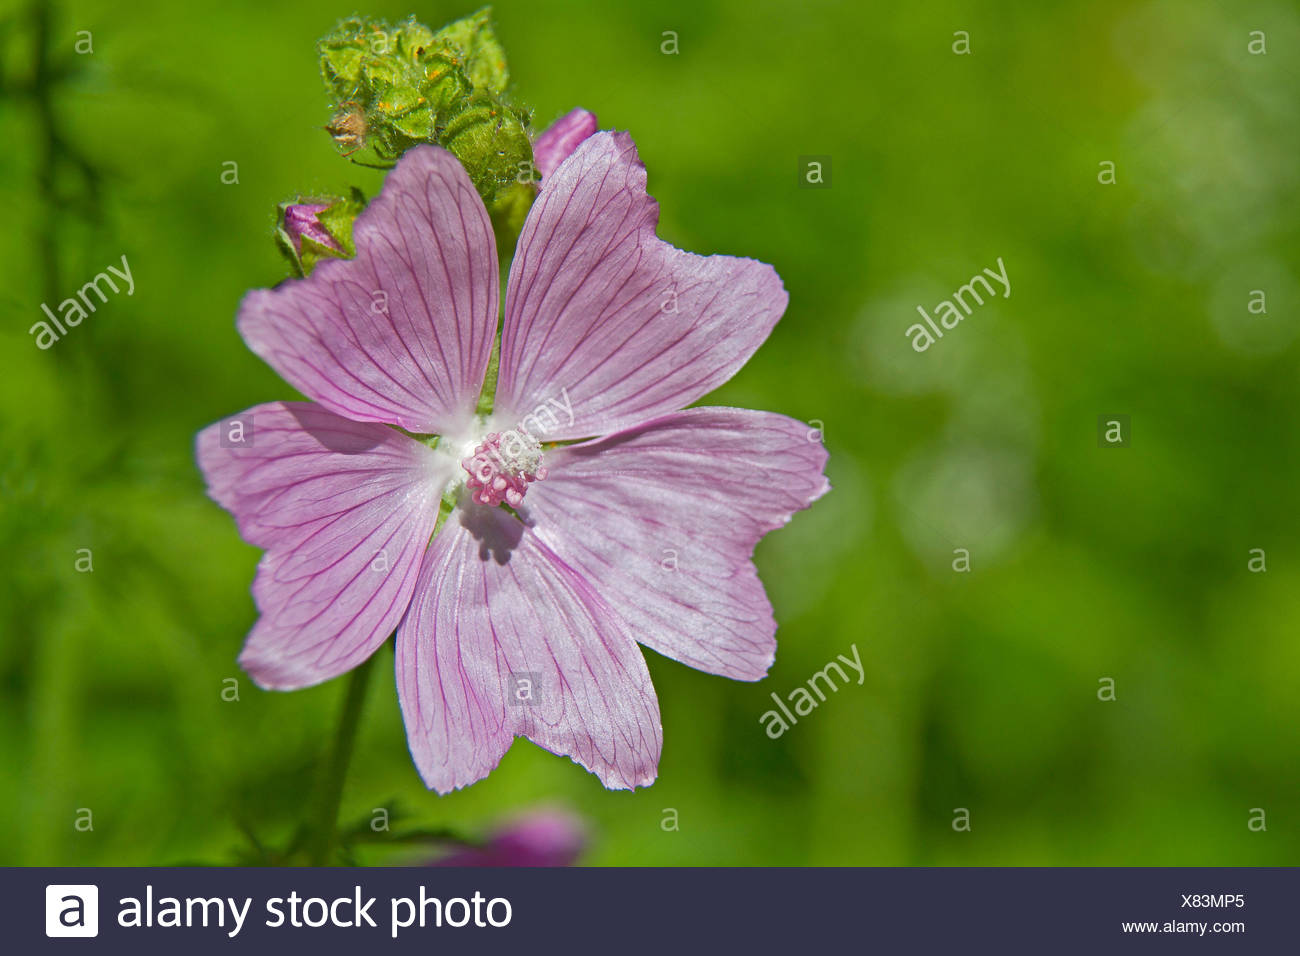 macro, close-up, macro admission, close up view, detail, flower, plant, bloom, Stock Photo